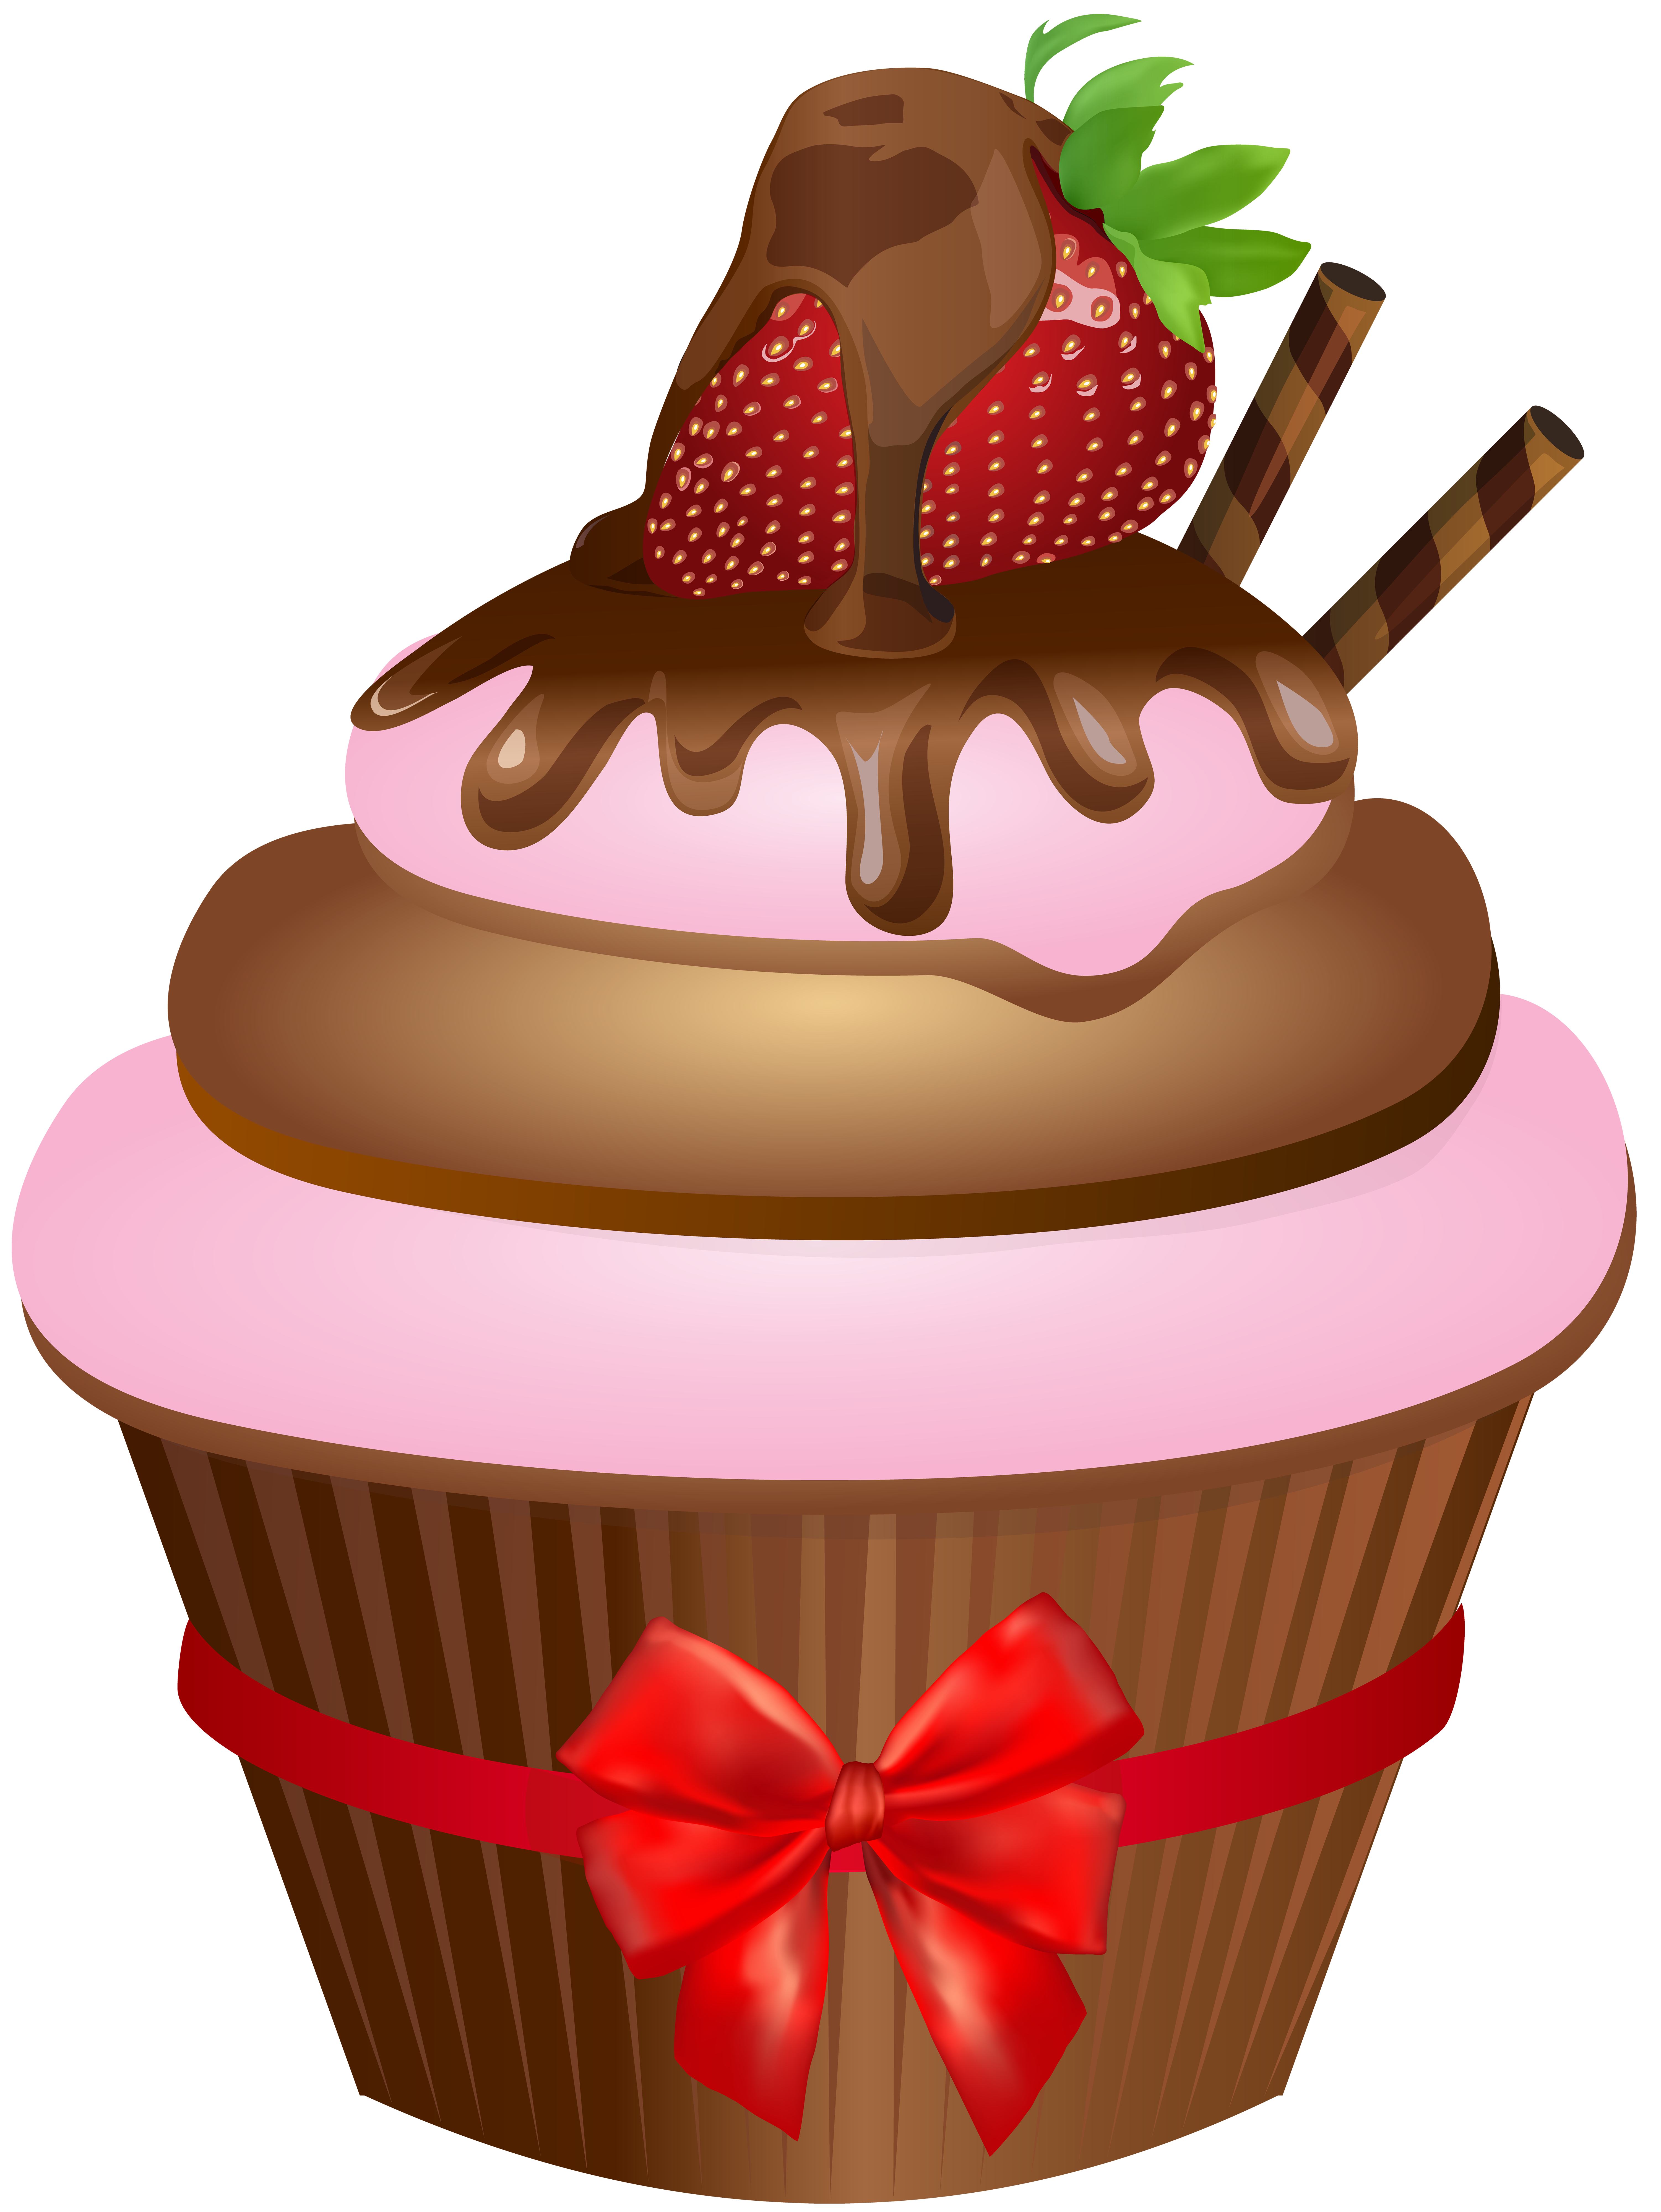 Chocolate muffin with strawberry. Muffins clipart cartoon